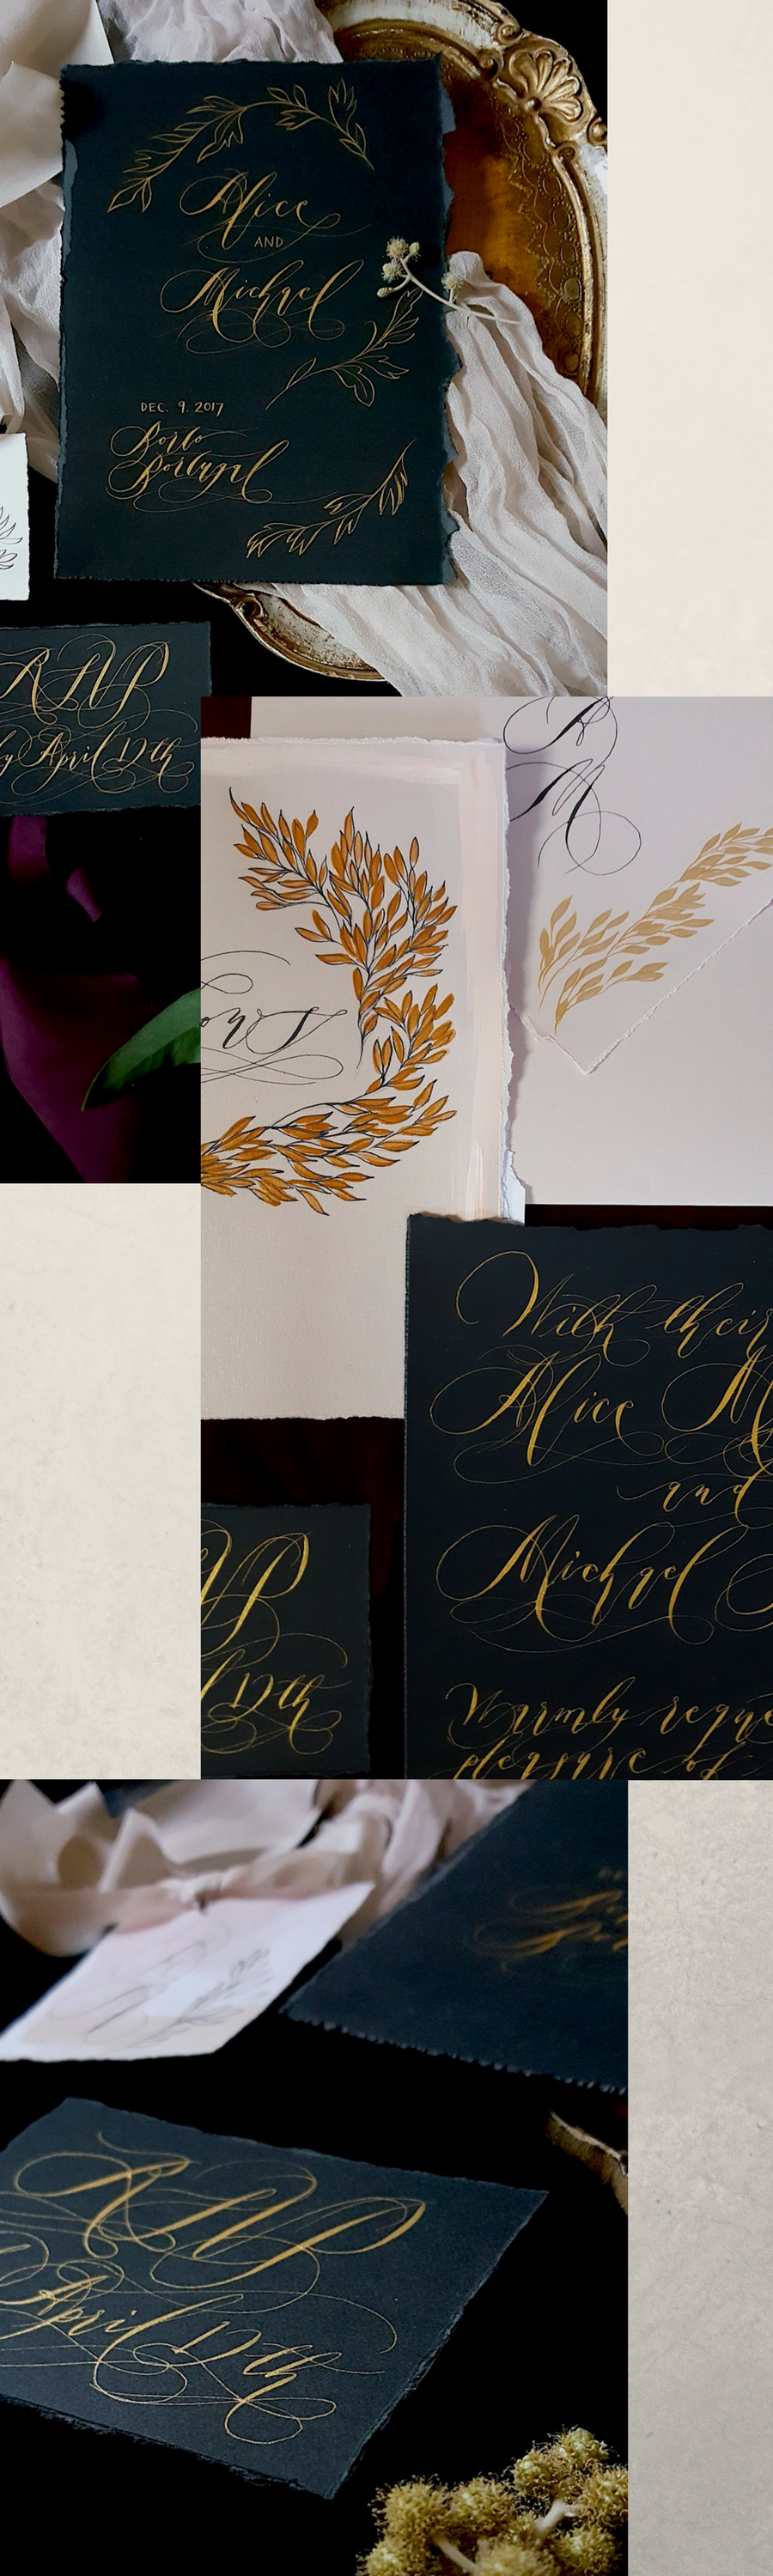 Make Sure Your Guests Are Bedazzled With Black Tie Hand Painted